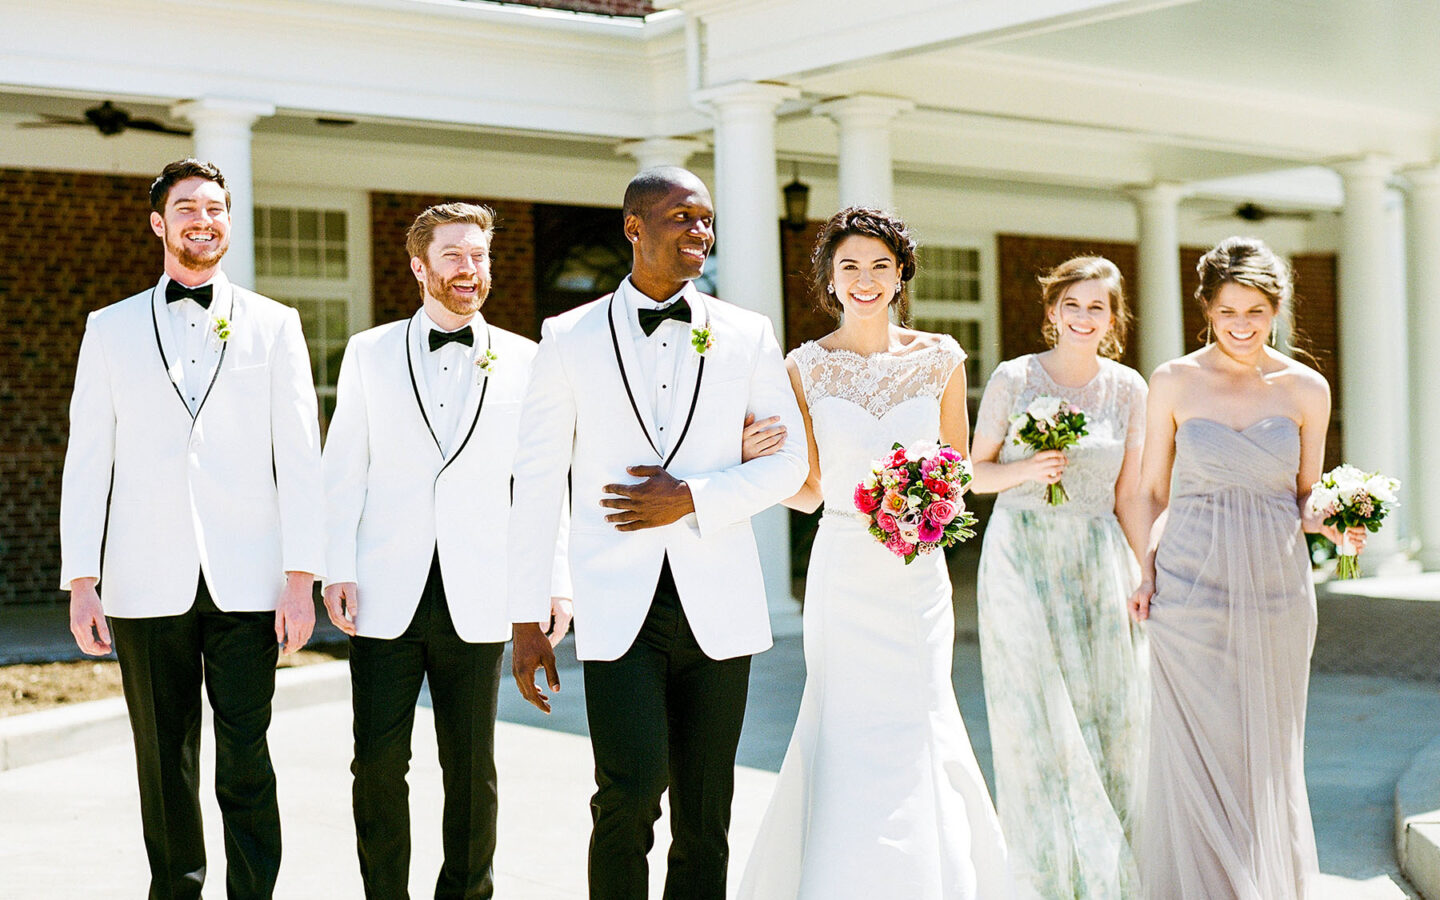 a bride and groom posing with members of their wedding party